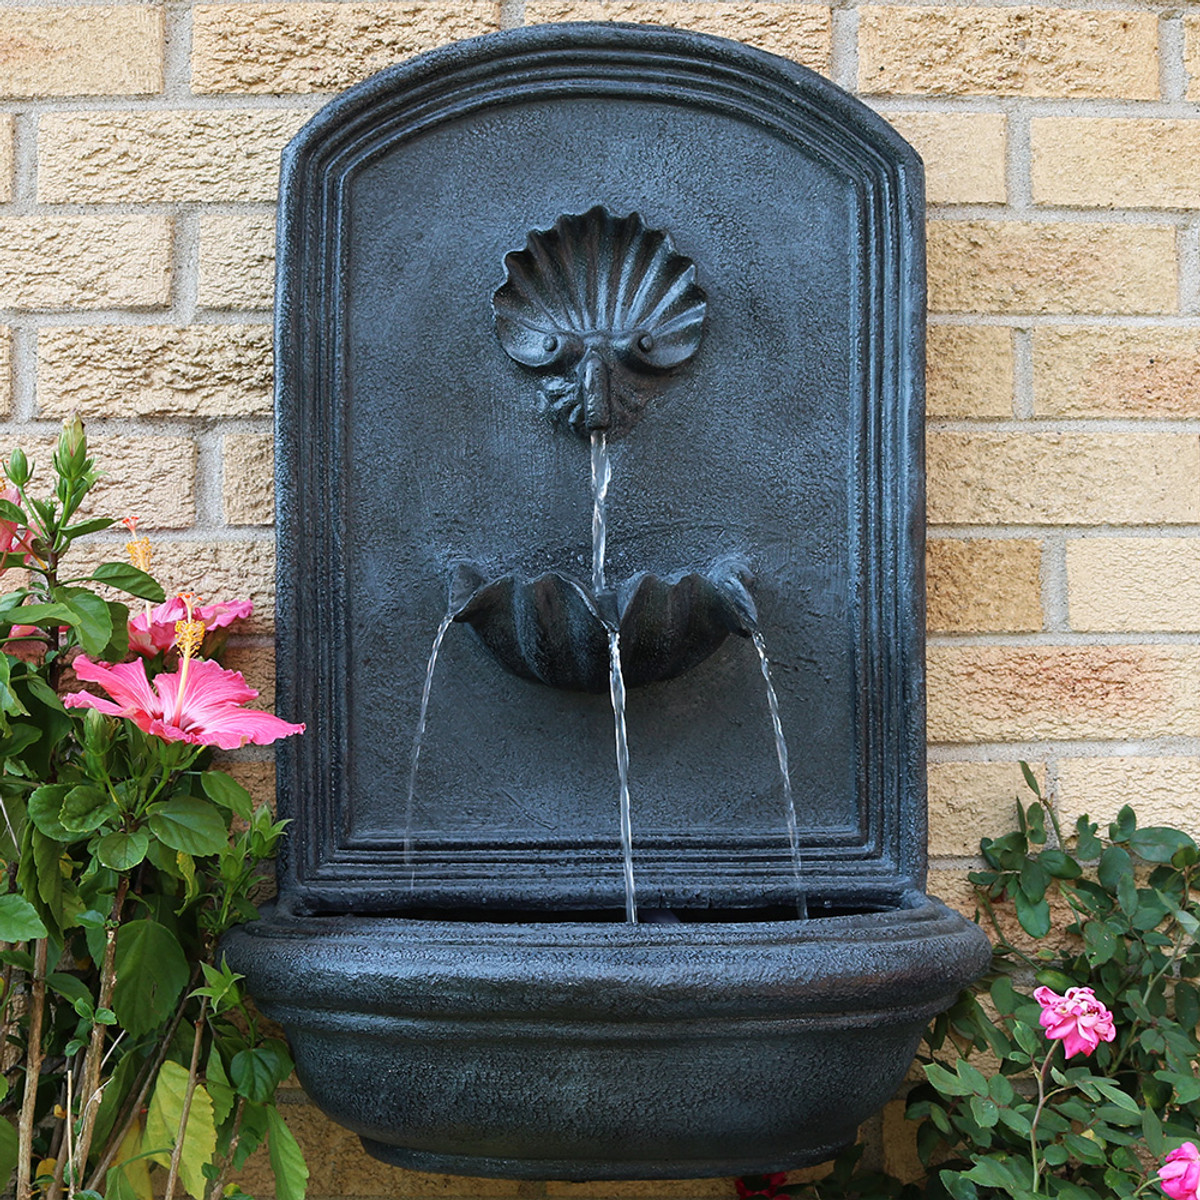 Sunnydaze Seaside Outdoor Wall Fountain With Electric Submersible Pump 27 Inch Tall Water Fountains